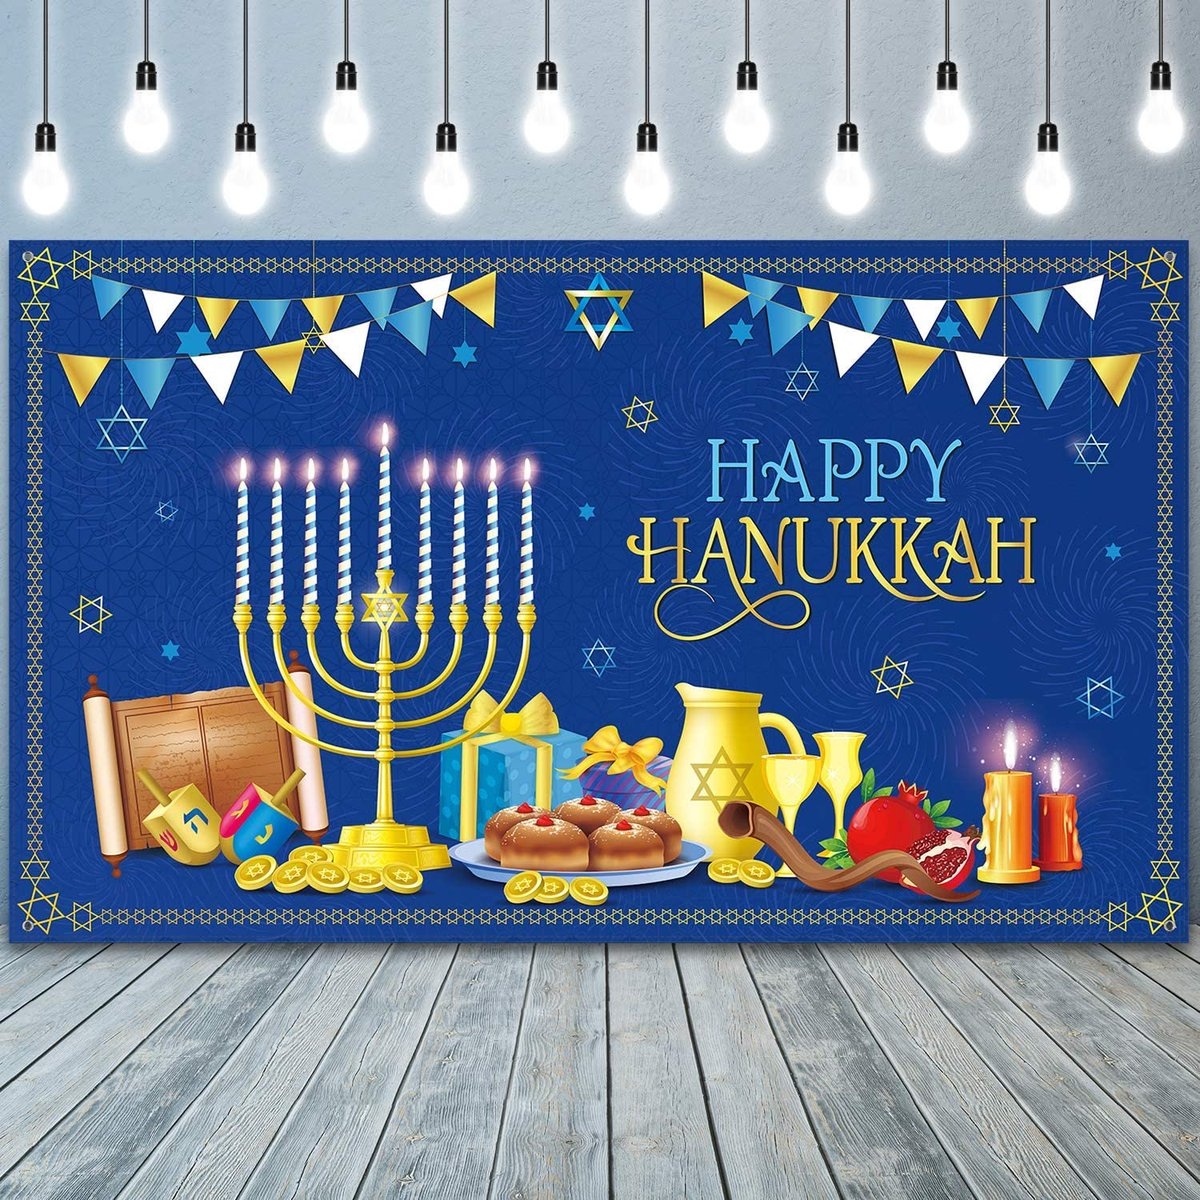 Now here's a very late Happy Hanukkah!!!! To all my friends who celebrate, hope you had an amazing eight days and nights back in December!!!! Sending you love and light!!!! Hope you had a beautiful holiday!!!! 🤗❤️✡️🔯🕎🕯😍🥰 #Hanukkah #HappyHanukkah #Hanukkah2020 #HanukkahLove